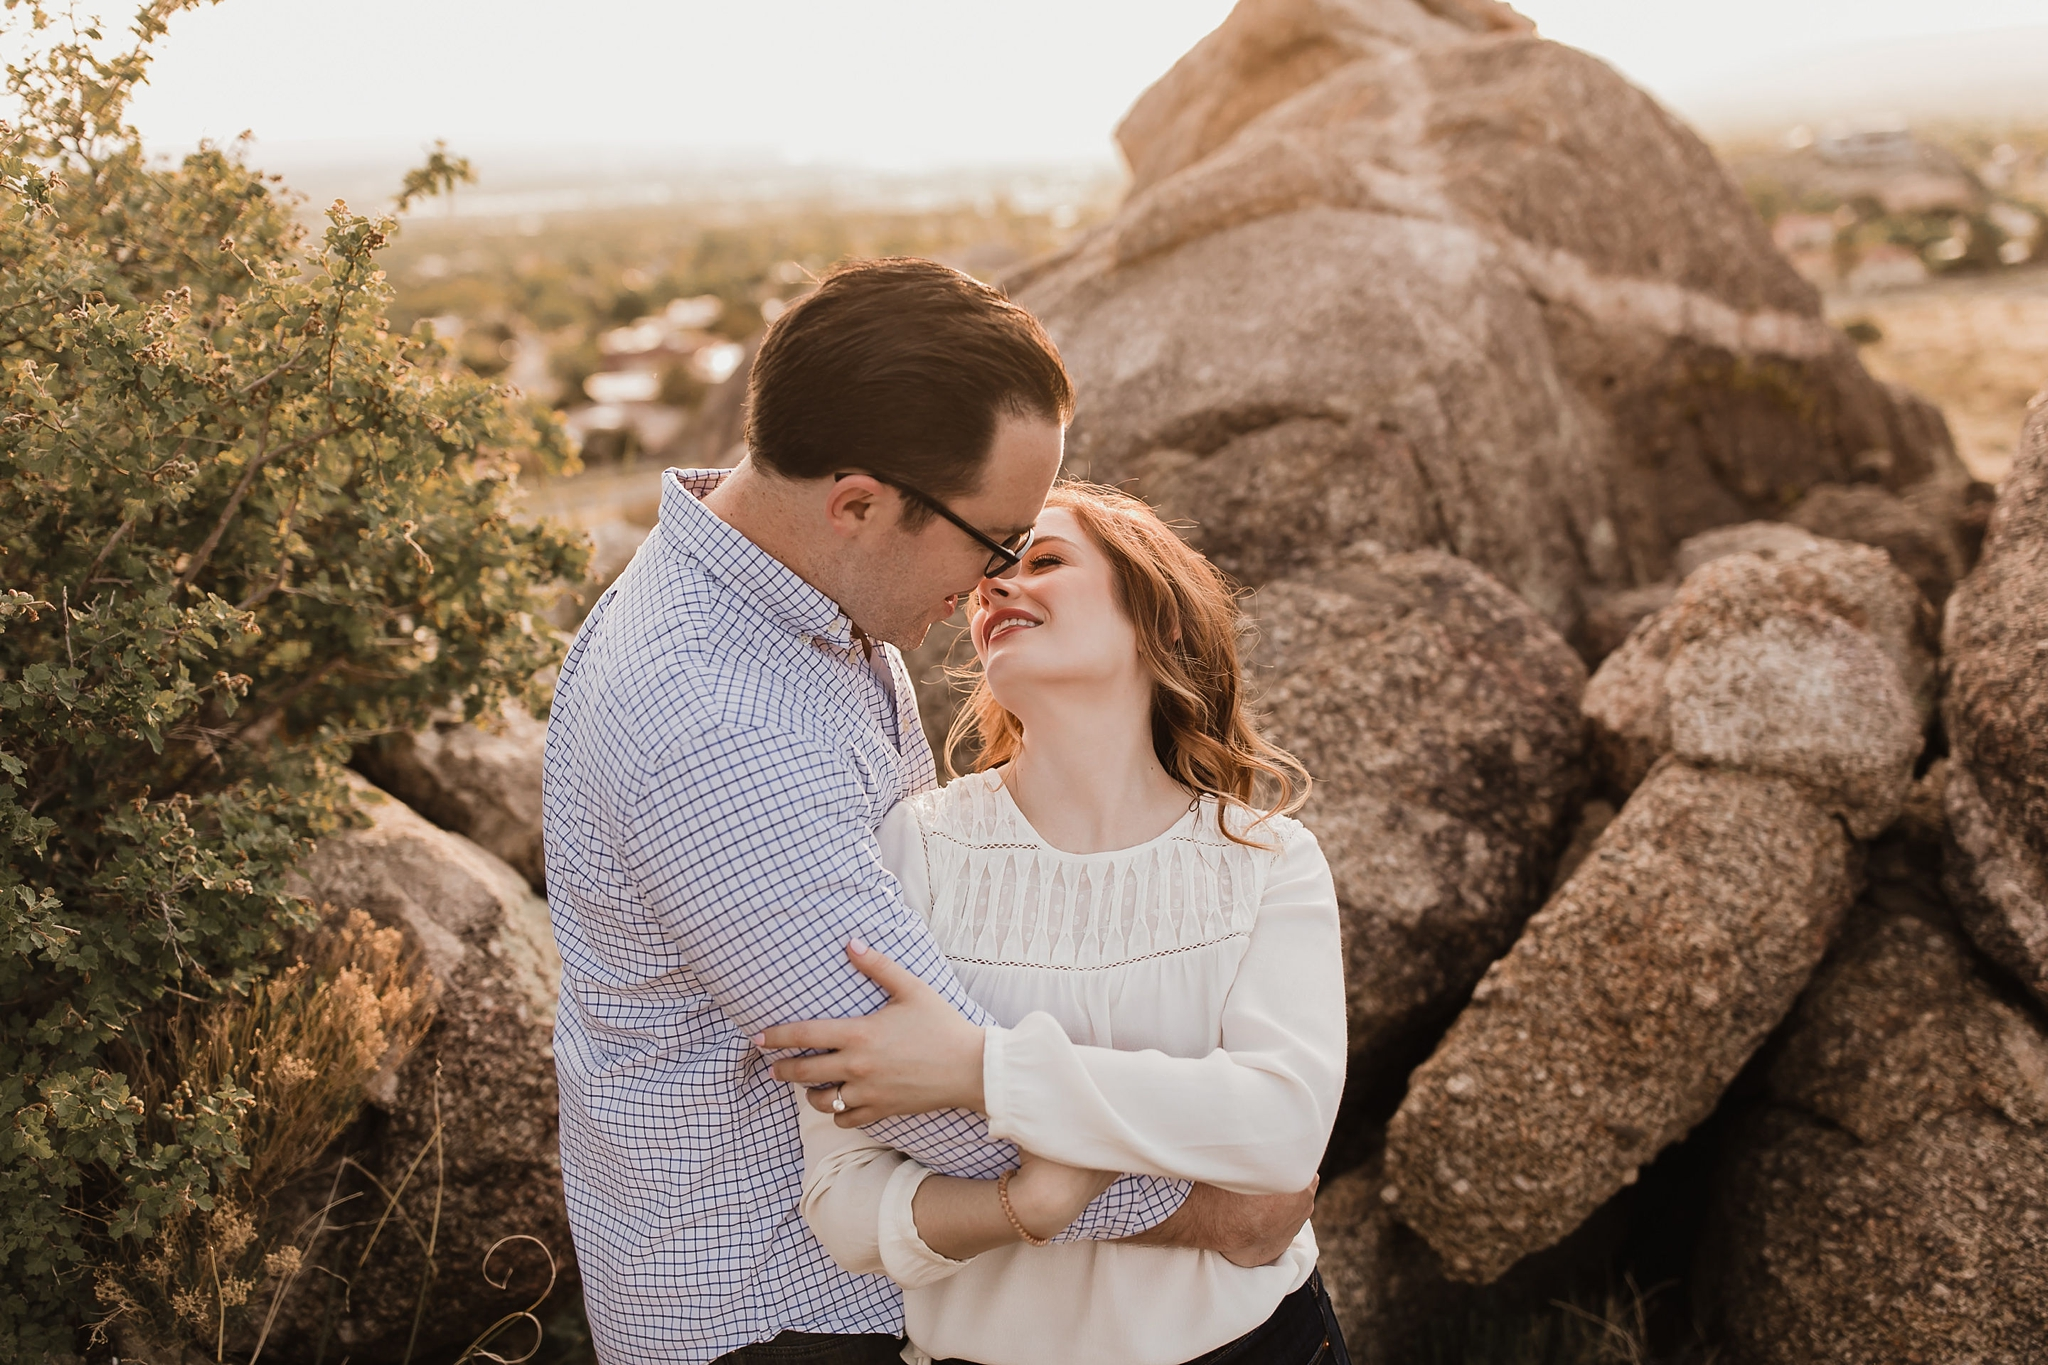 Alicia+lucia+photography+-+albuquerque+wedding+photographer+-+santa+fe+wedding+photography+-+new+mexico+wedding+photographer+-+new+mexico+wedding+-+new+mexico+engagement+-+engagement+photographer+-+mountain+engagement+-+desert+engagement_0018.jpg